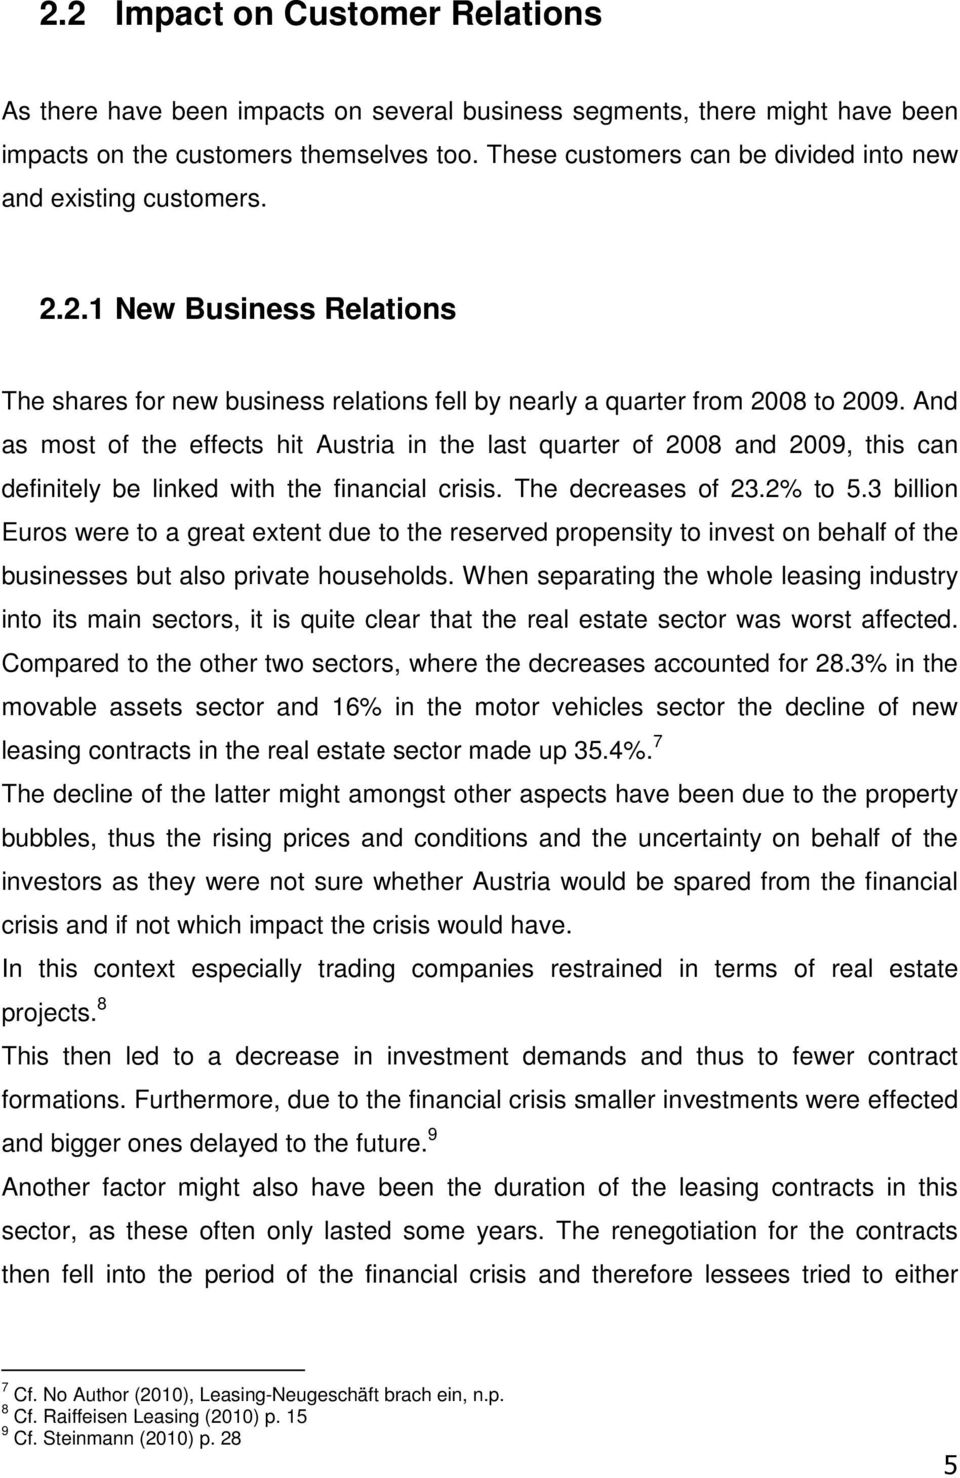 And as most of the effects hit Austria in the last quarter of 2008 and 2009, this can definitely be linked with the financial crisis. The decreases of 23.2% to 5.